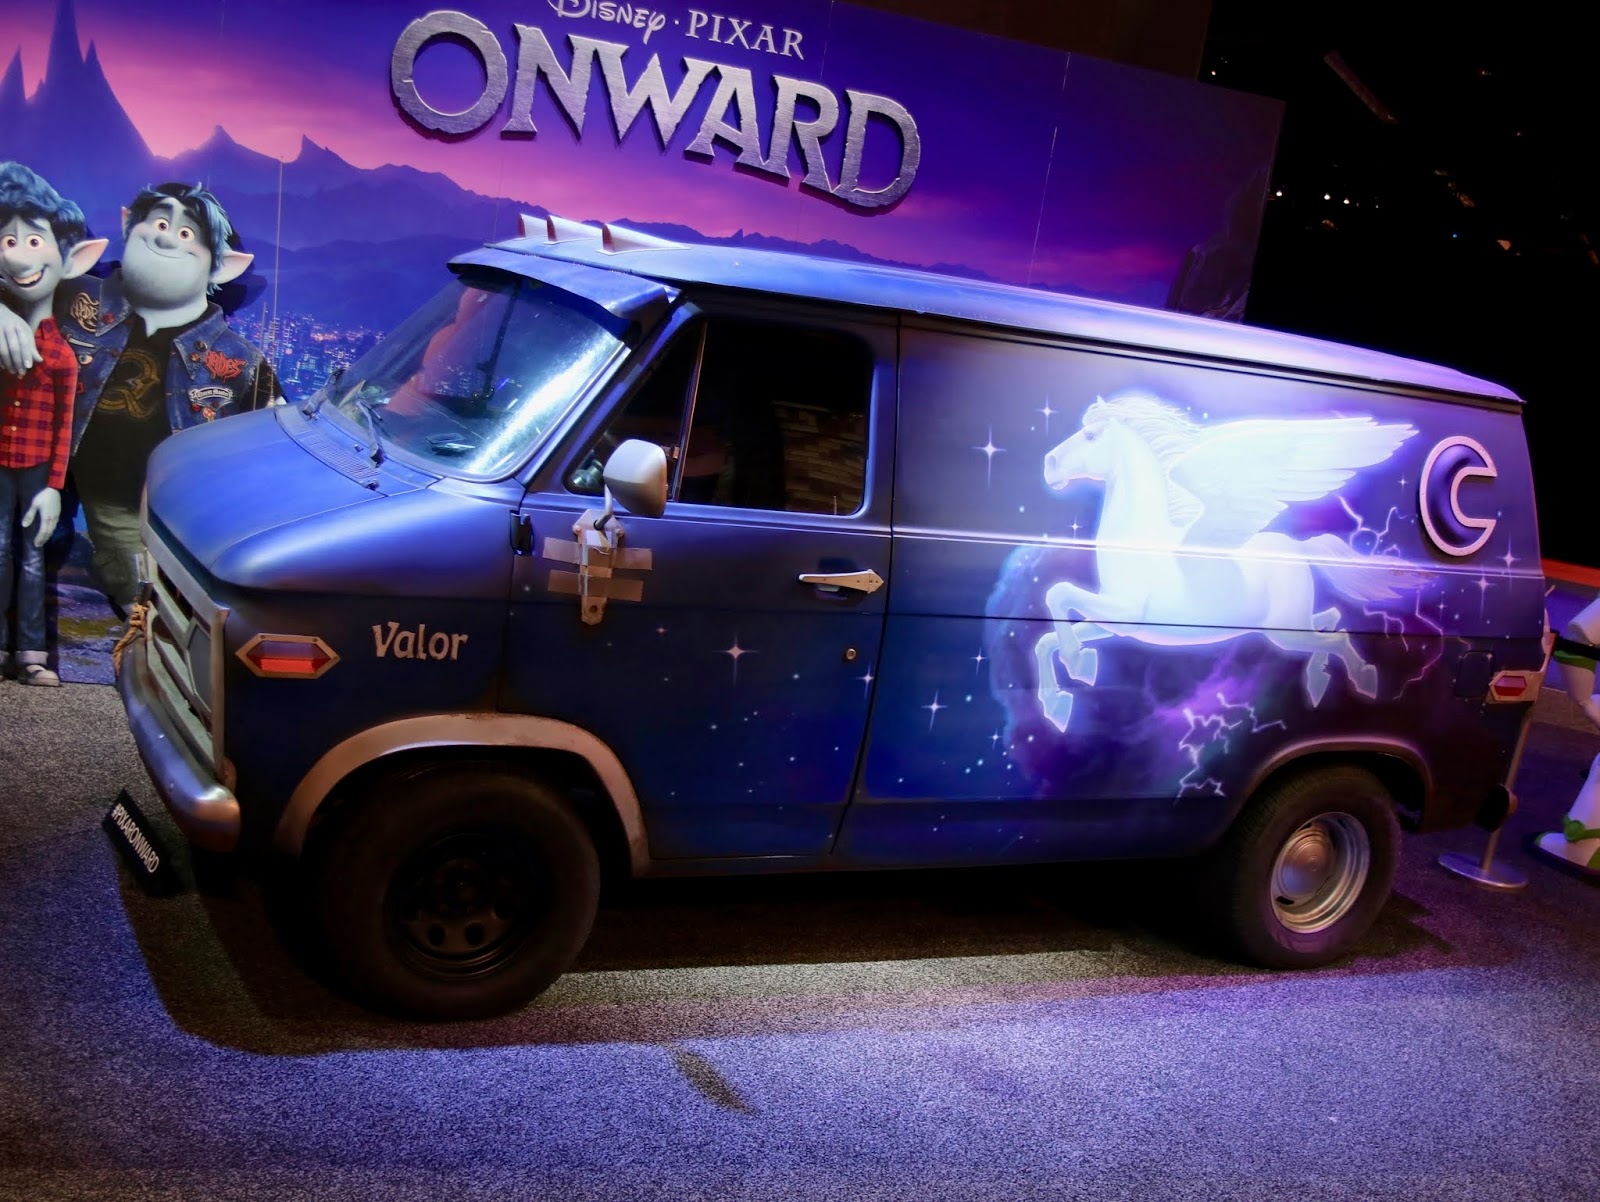 Real life Guinevere Van Onward Van Replica D23 Expo 2019